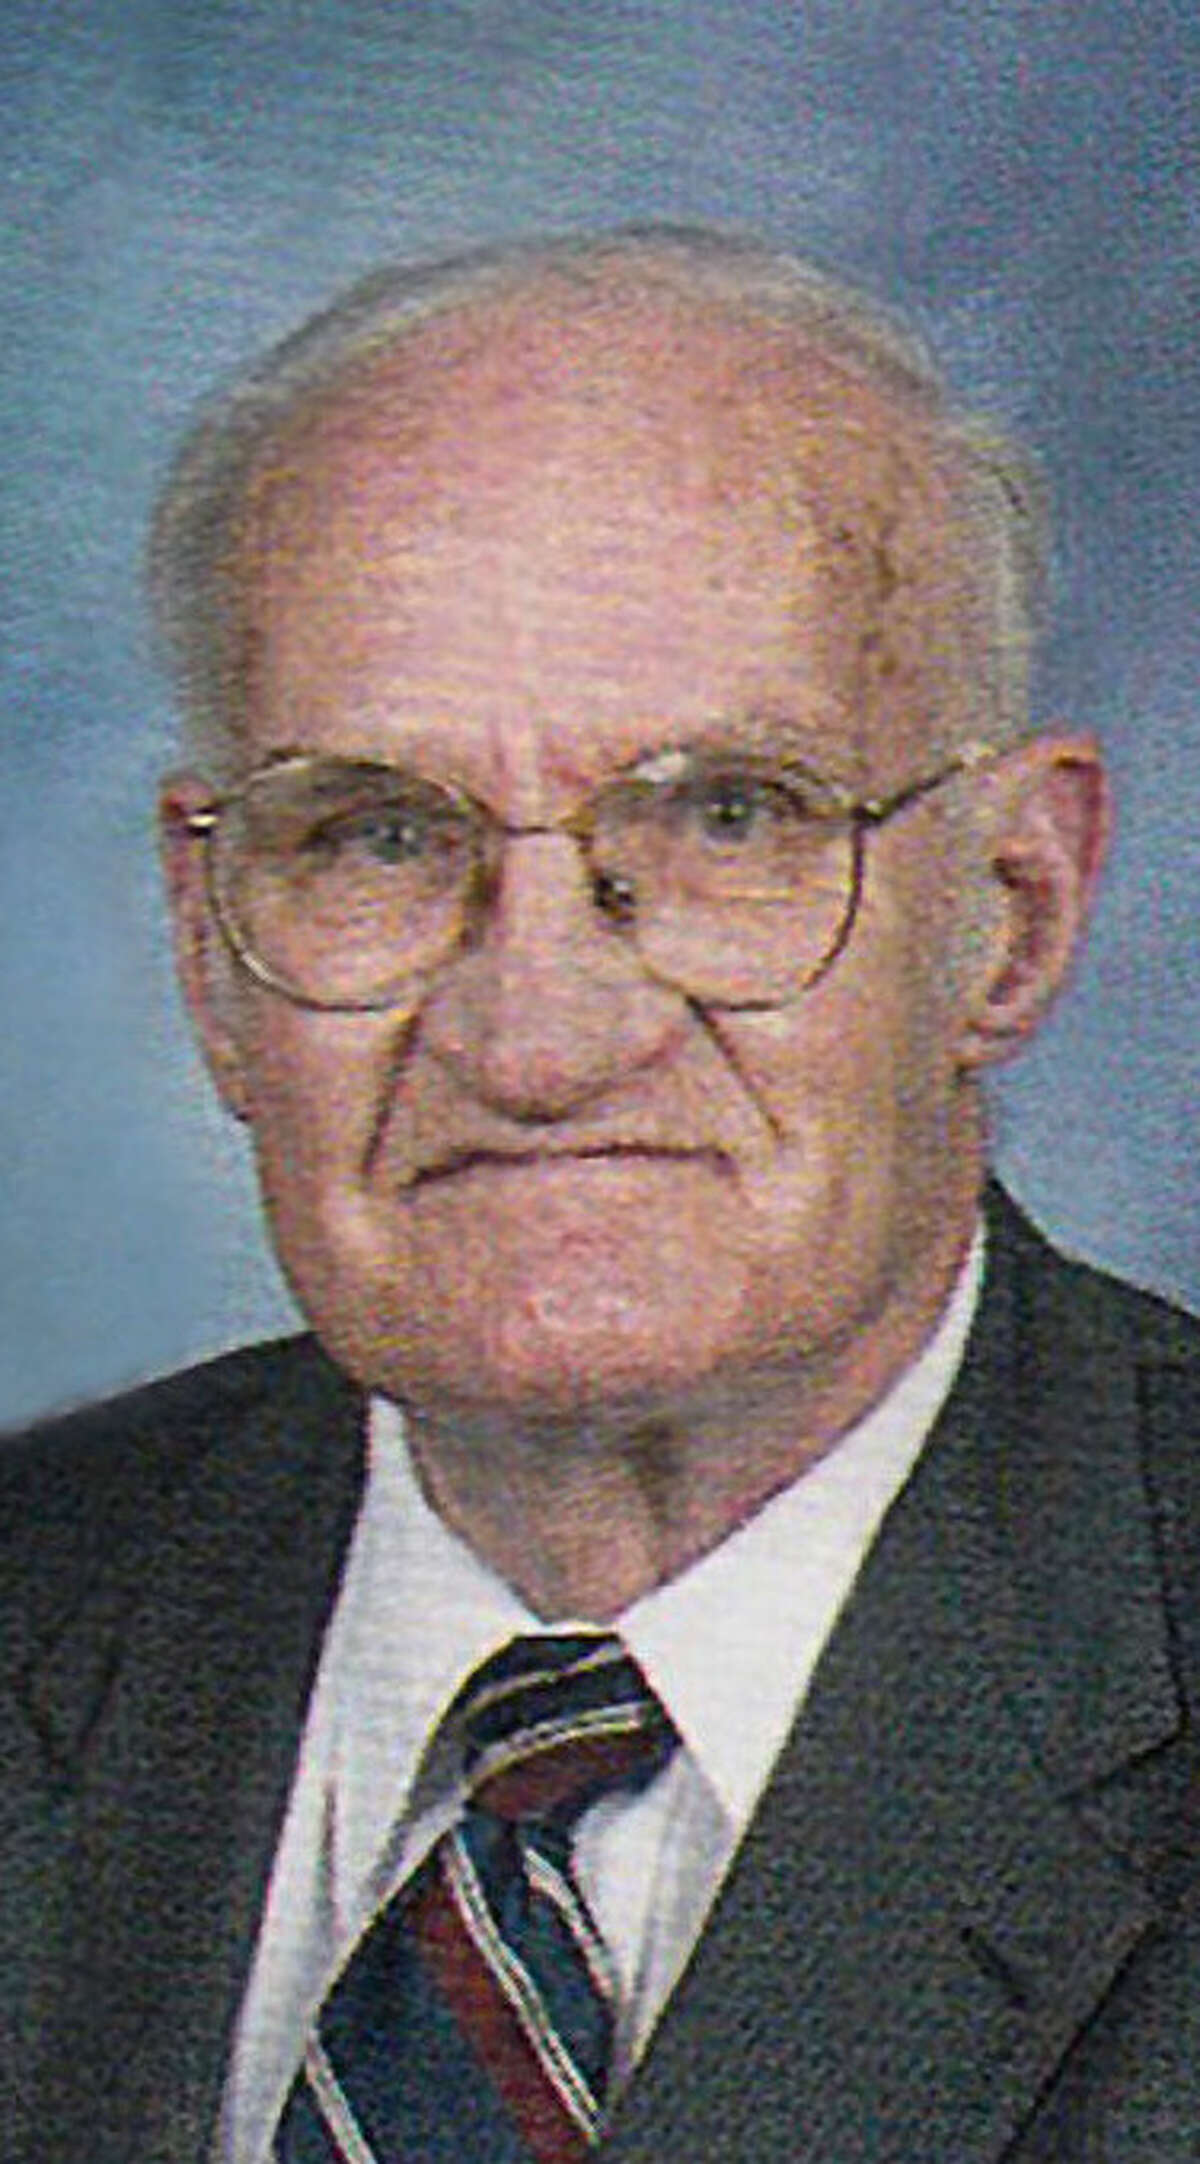 Dr. Ernest J. Gregory, a longtime general surgeon, died Oct. 12 at the age of 89.